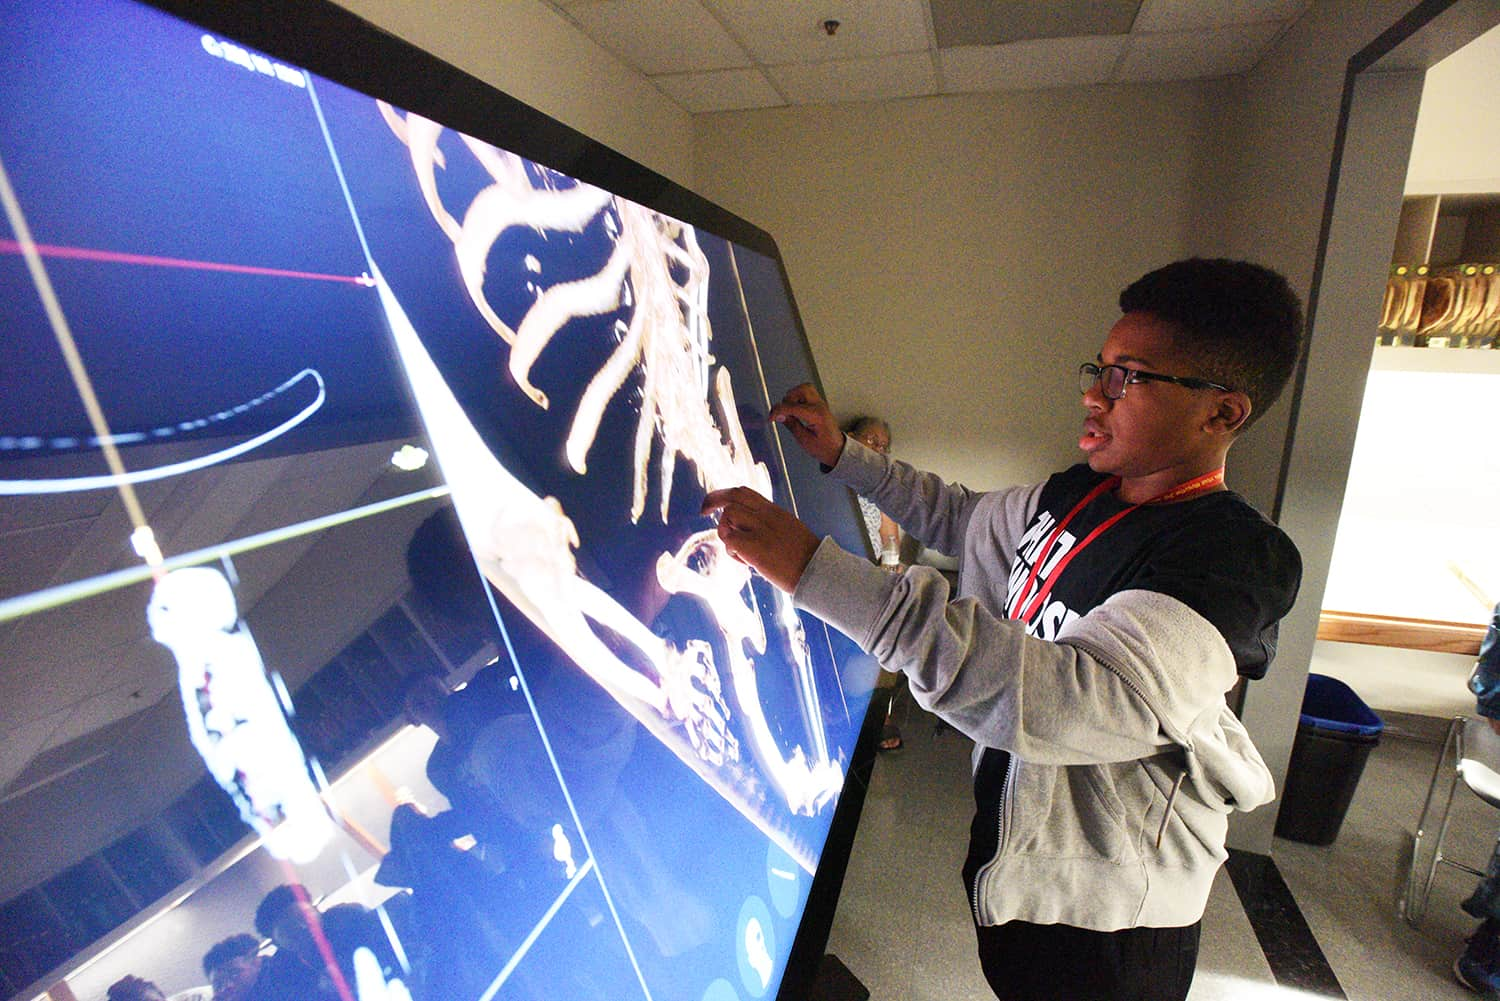 Visiting students learn about skeletal structure during STEAM Revolution at UAMS.